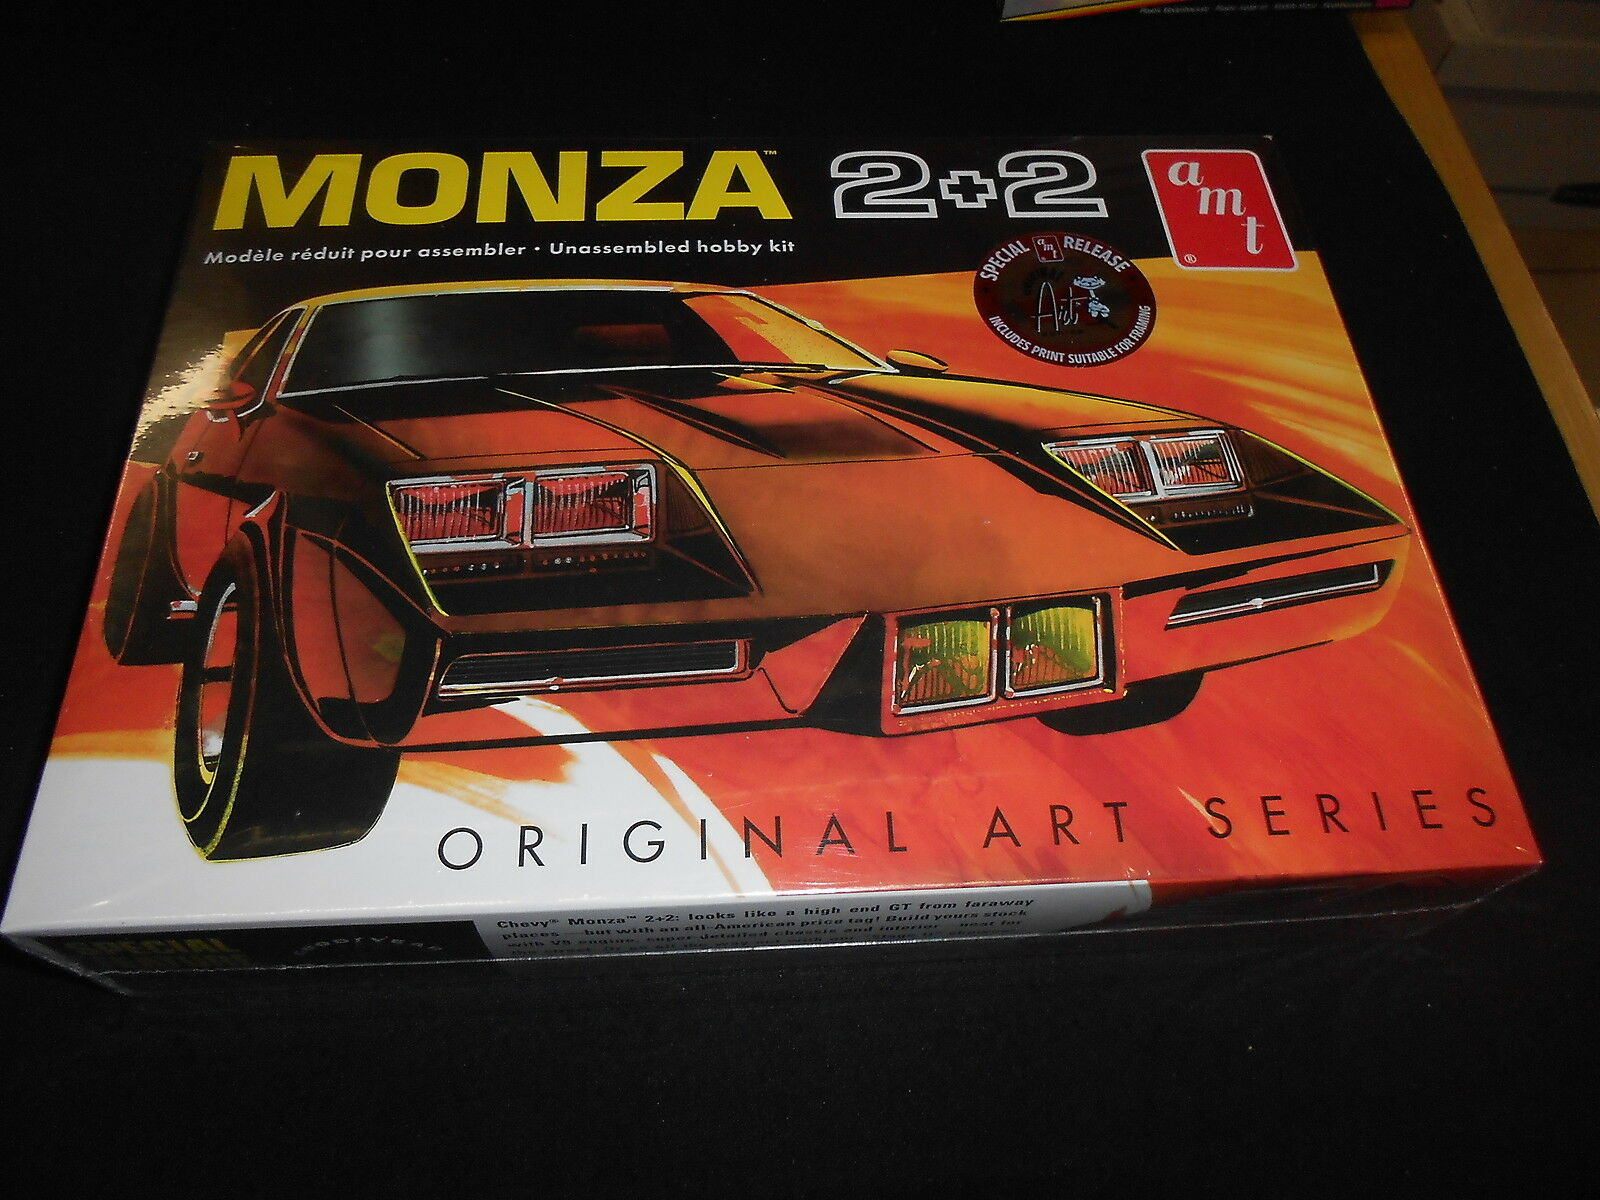 AMT 1019, 1 25 MONZA 2+2 PLASTIC MODEL KIT